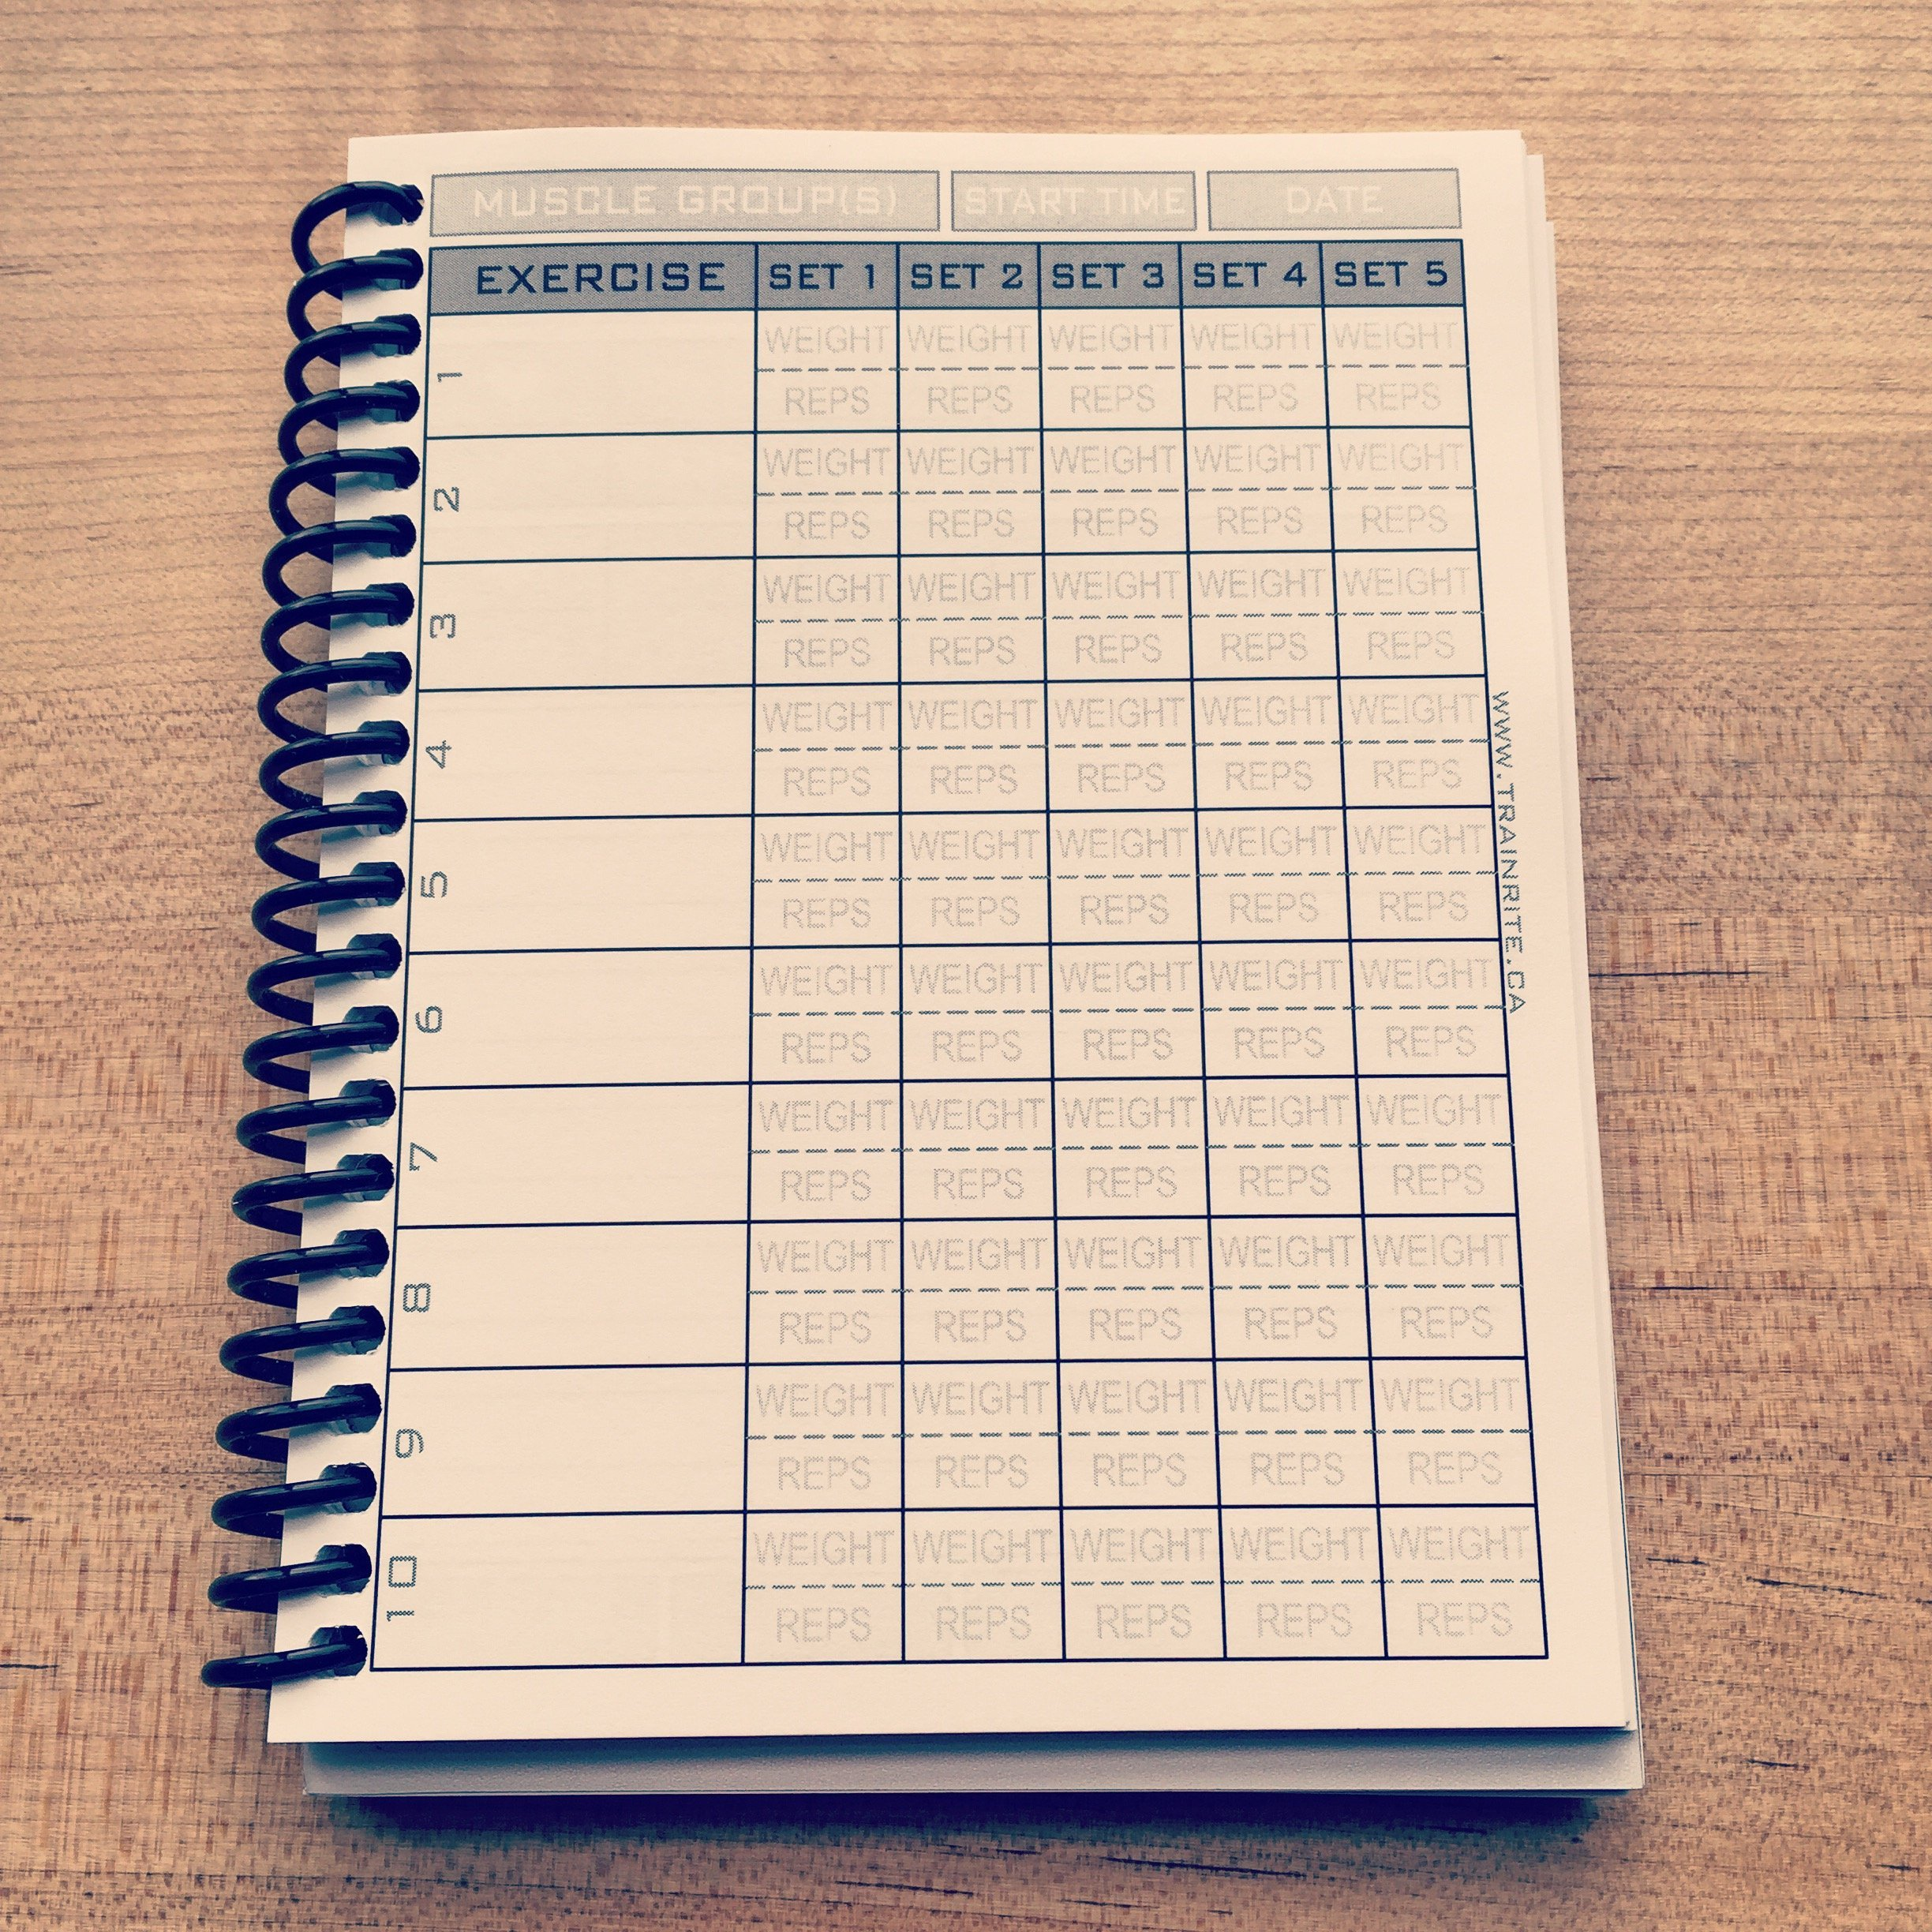 trainrite compact fitness journal an exercise log book matt